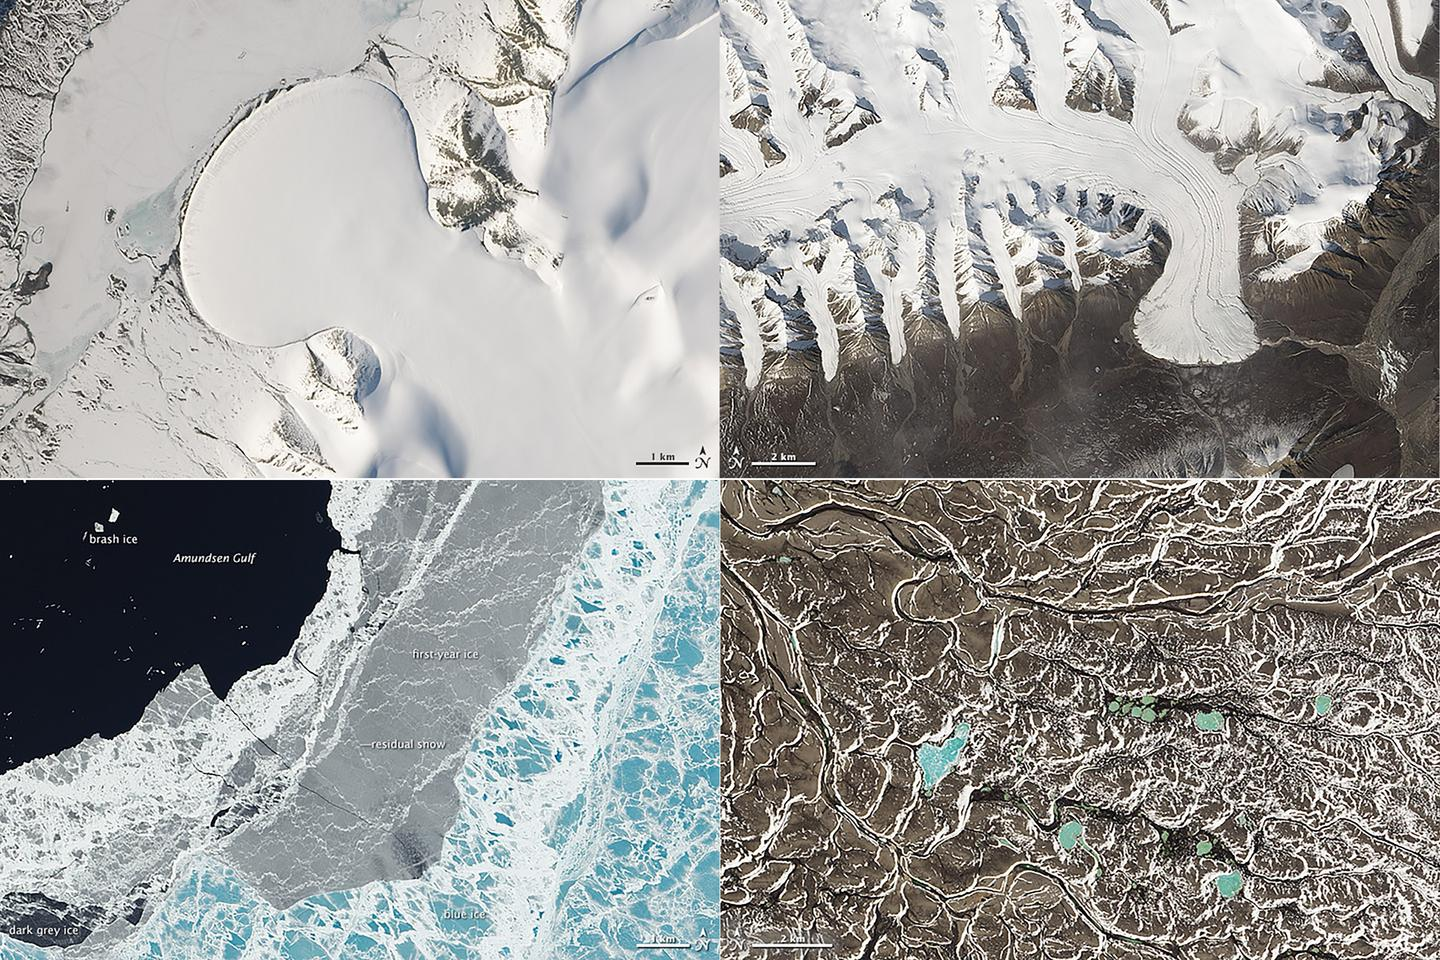 North Greenland's Elephant Foot Glacier (top left), Canada's Ellesmere Island glaciers (top right), the sea ice in the Amundsen Gulf (bottom left) and chains of lakes in the Northwest Territories (bottom right) (Image: NASA Earth Observatory)